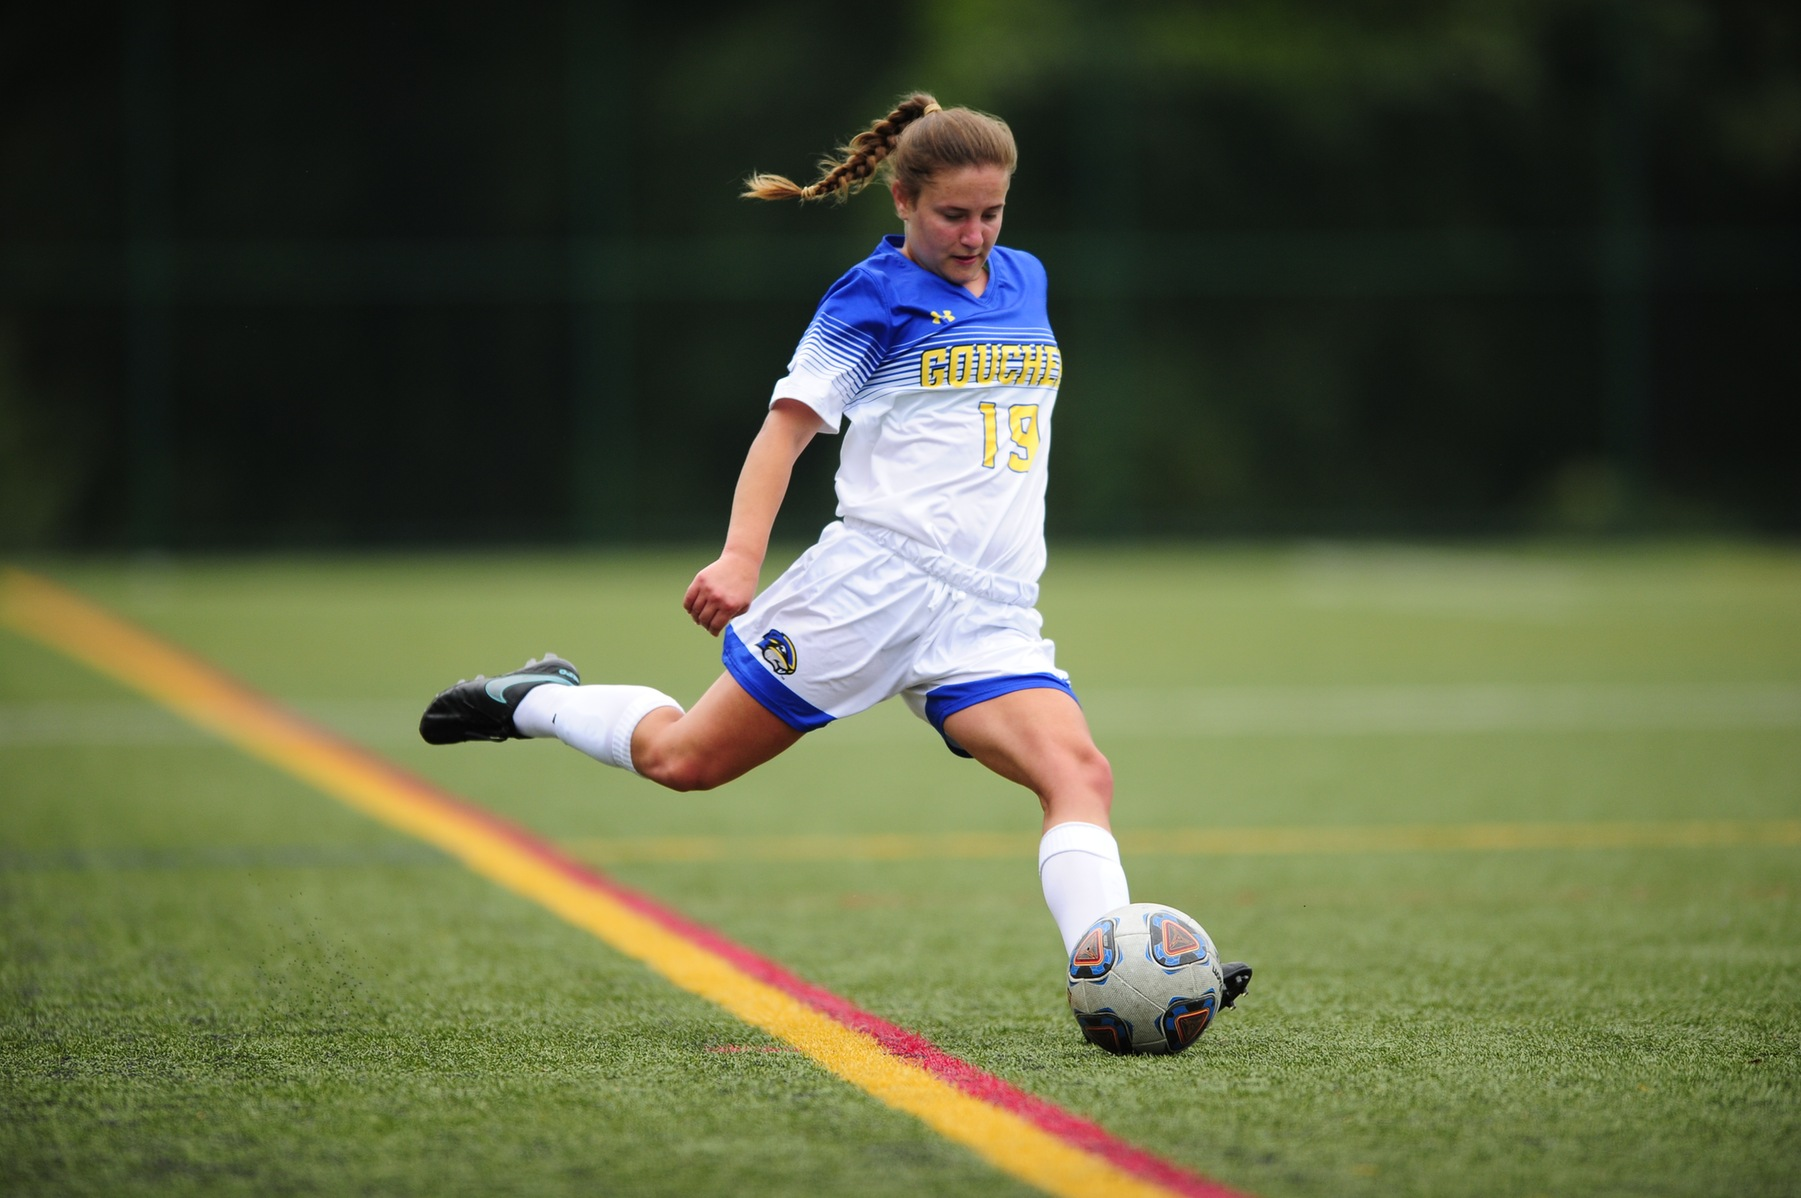 Goucher Falls to Drew in Season Finale